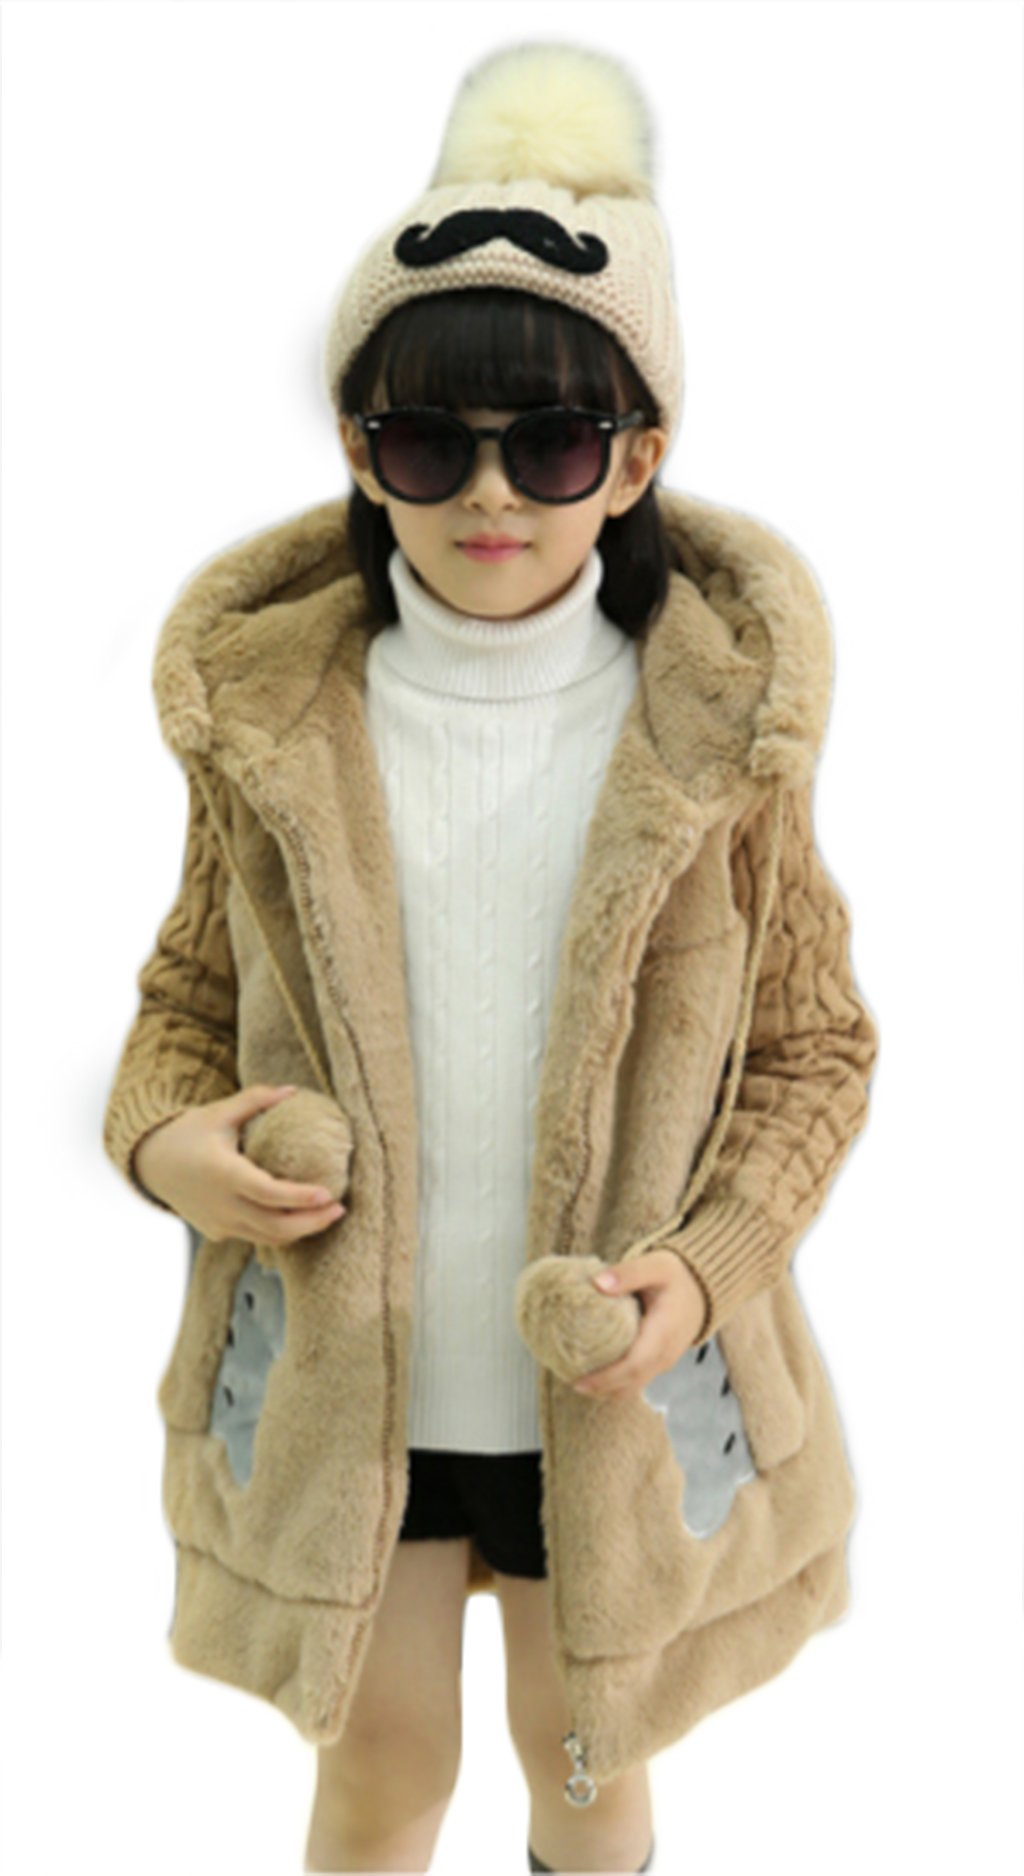 BANGELY Kids Girl Winter Warm Knited Fur Cartoon Coats Hooded Snowsuit Jackets Outerwear size 6-7 Years/Tag130 (Khaki)